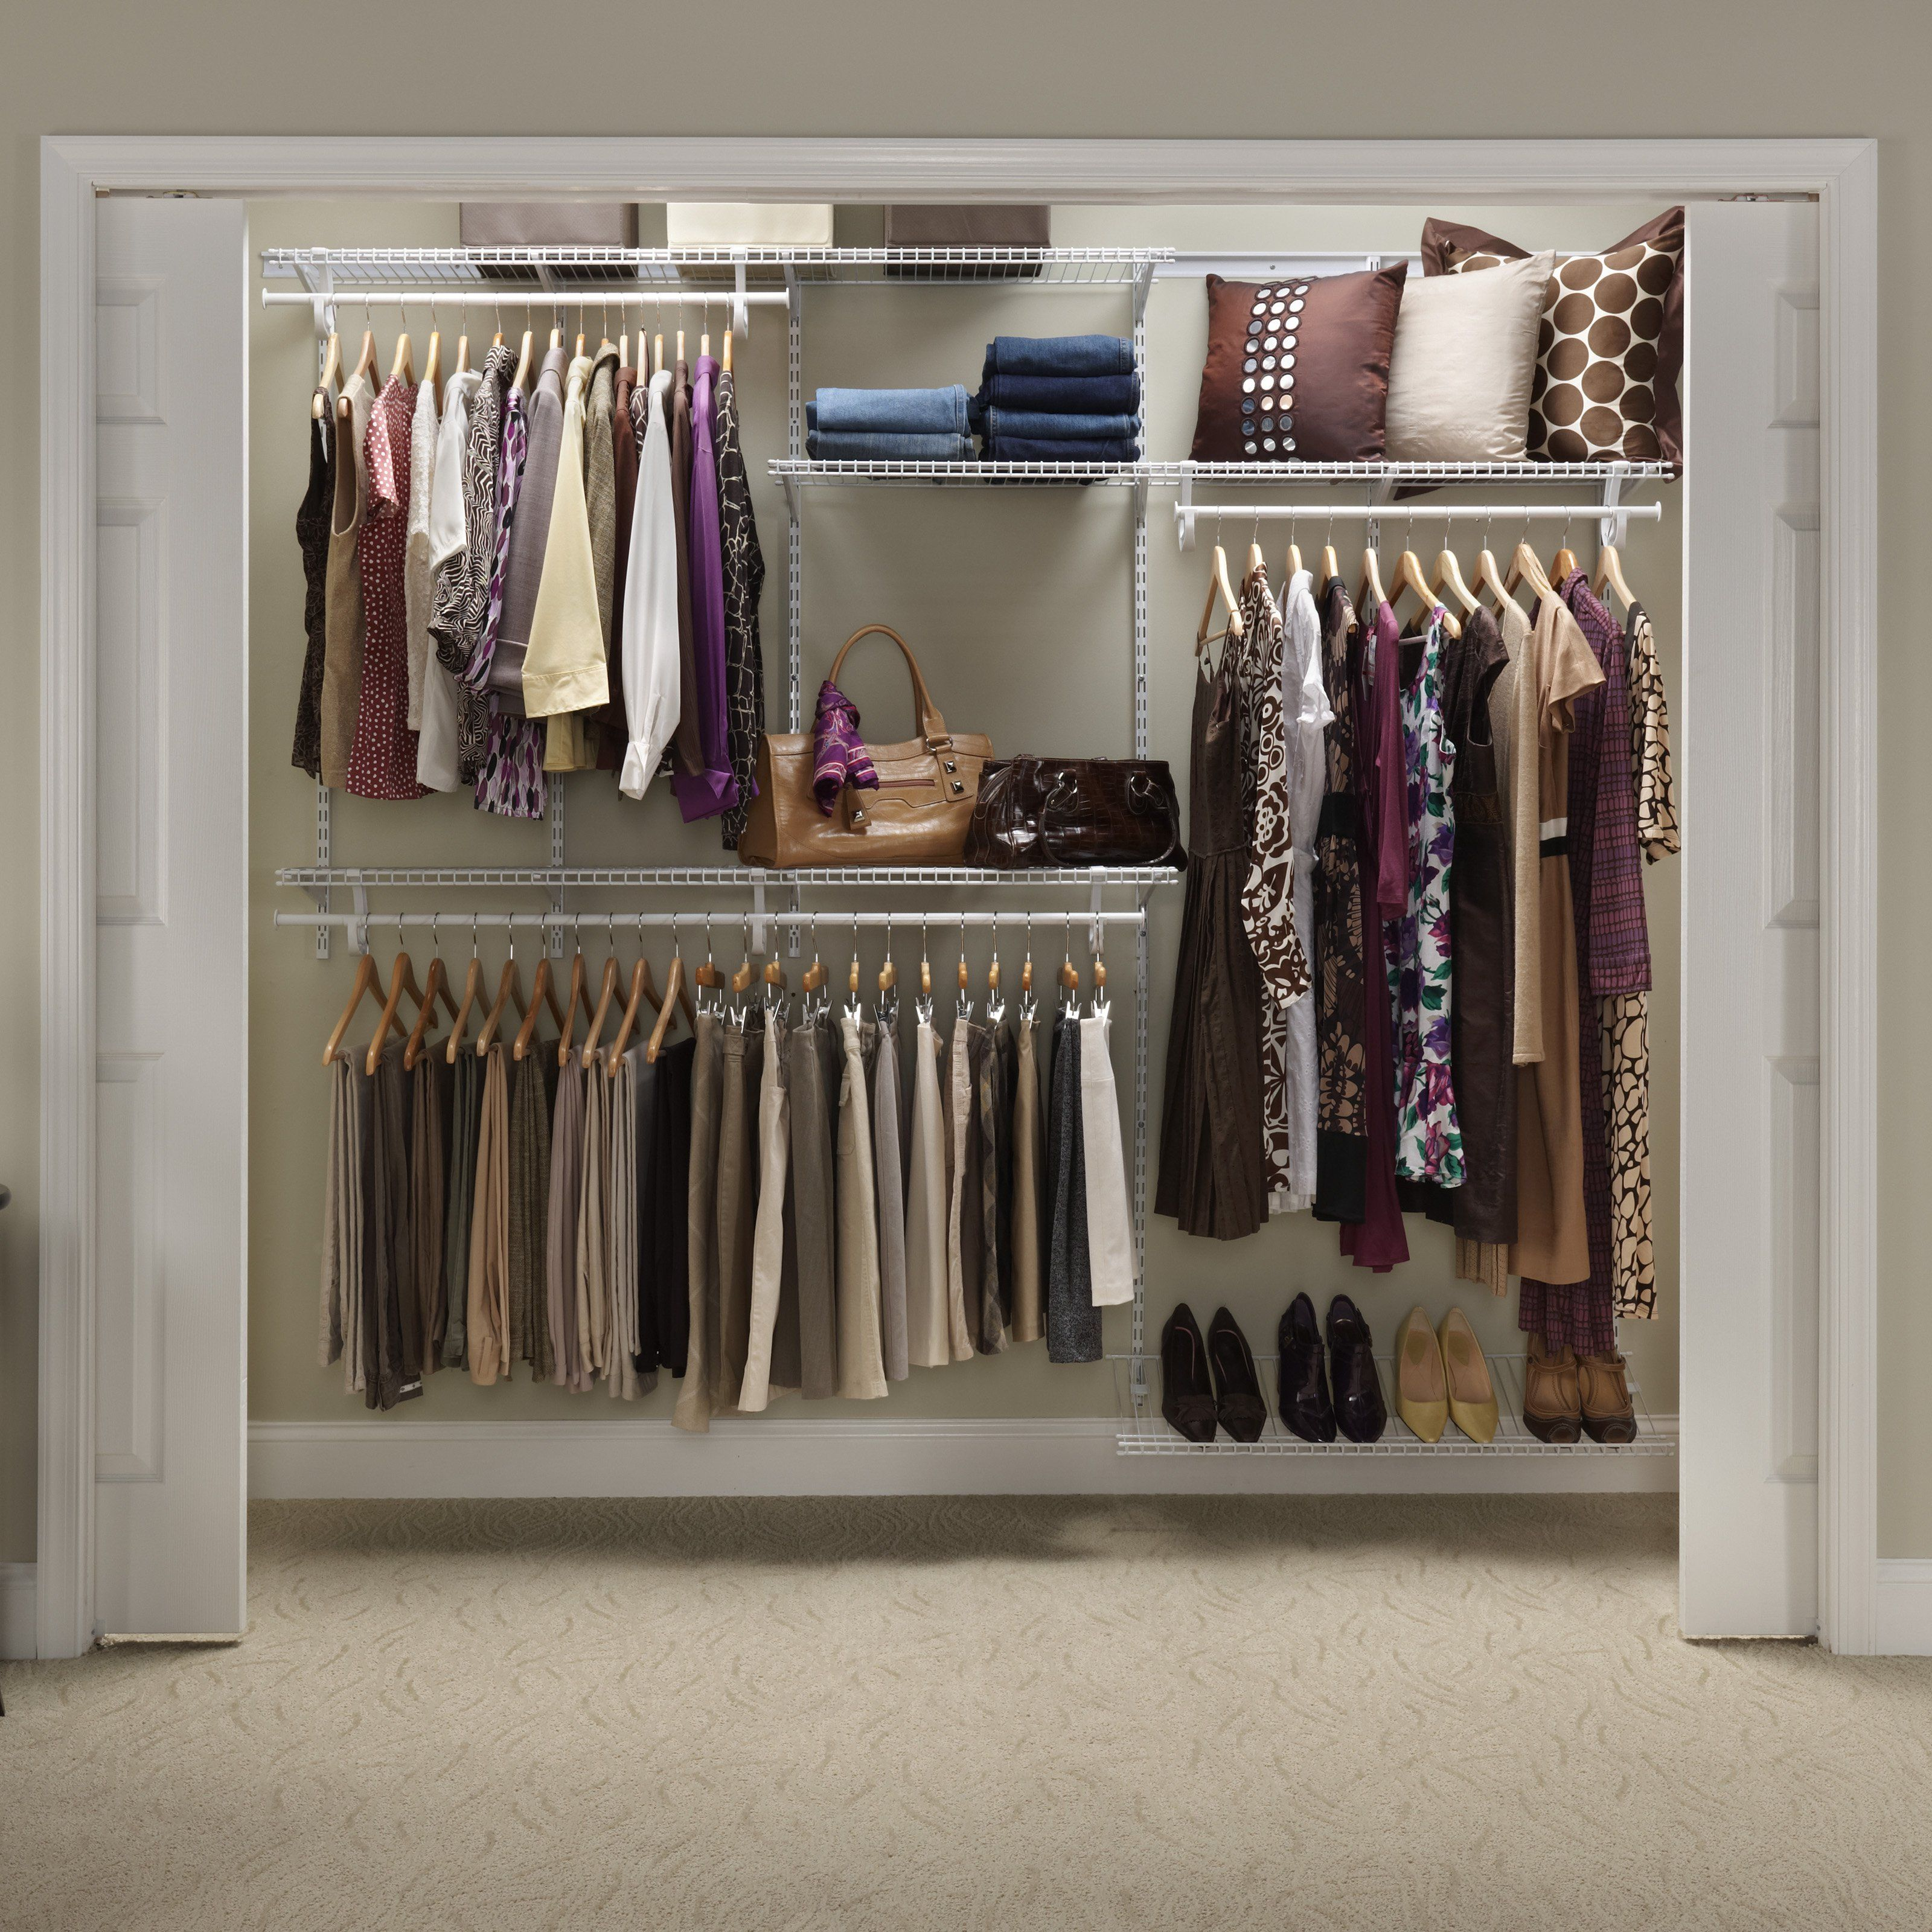 inexpensive in best design interior do it storage inspiring diy unique walk small ideas organizers orga yourself organizer shelving closet with systems